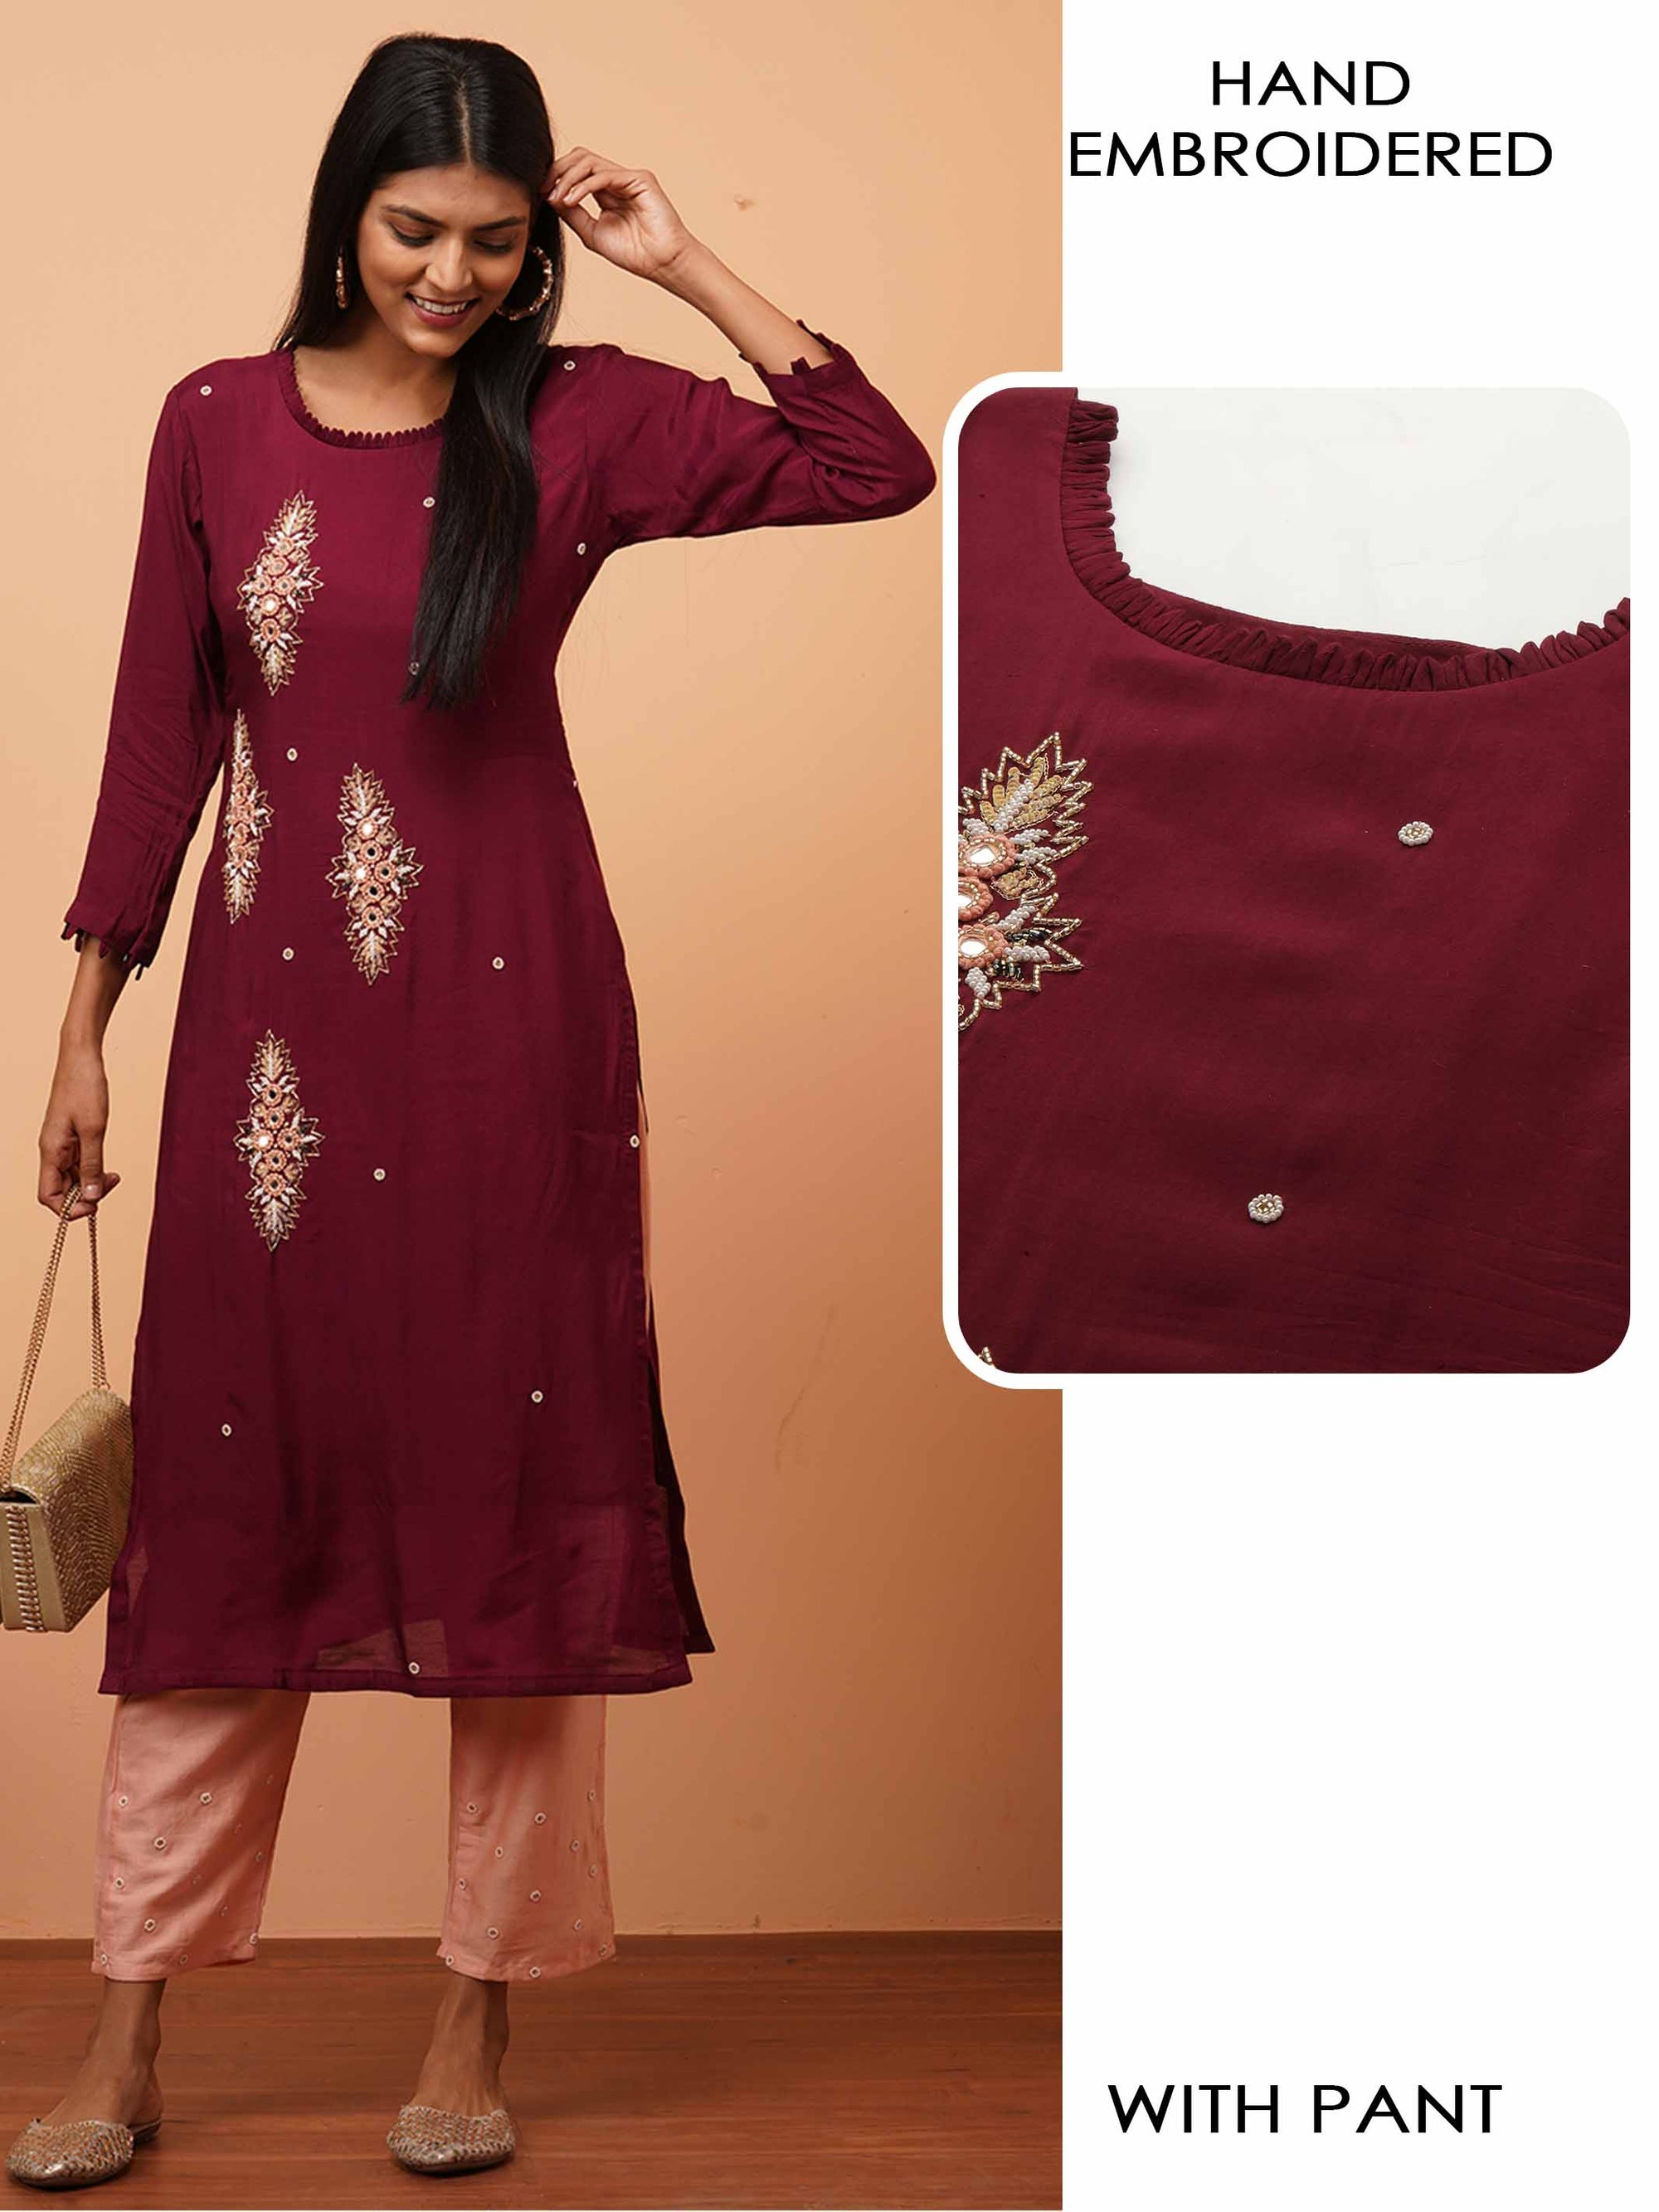 Hand Embroidered Festive Kurta with Contrast Hand Embroidered Pant - Burgundy